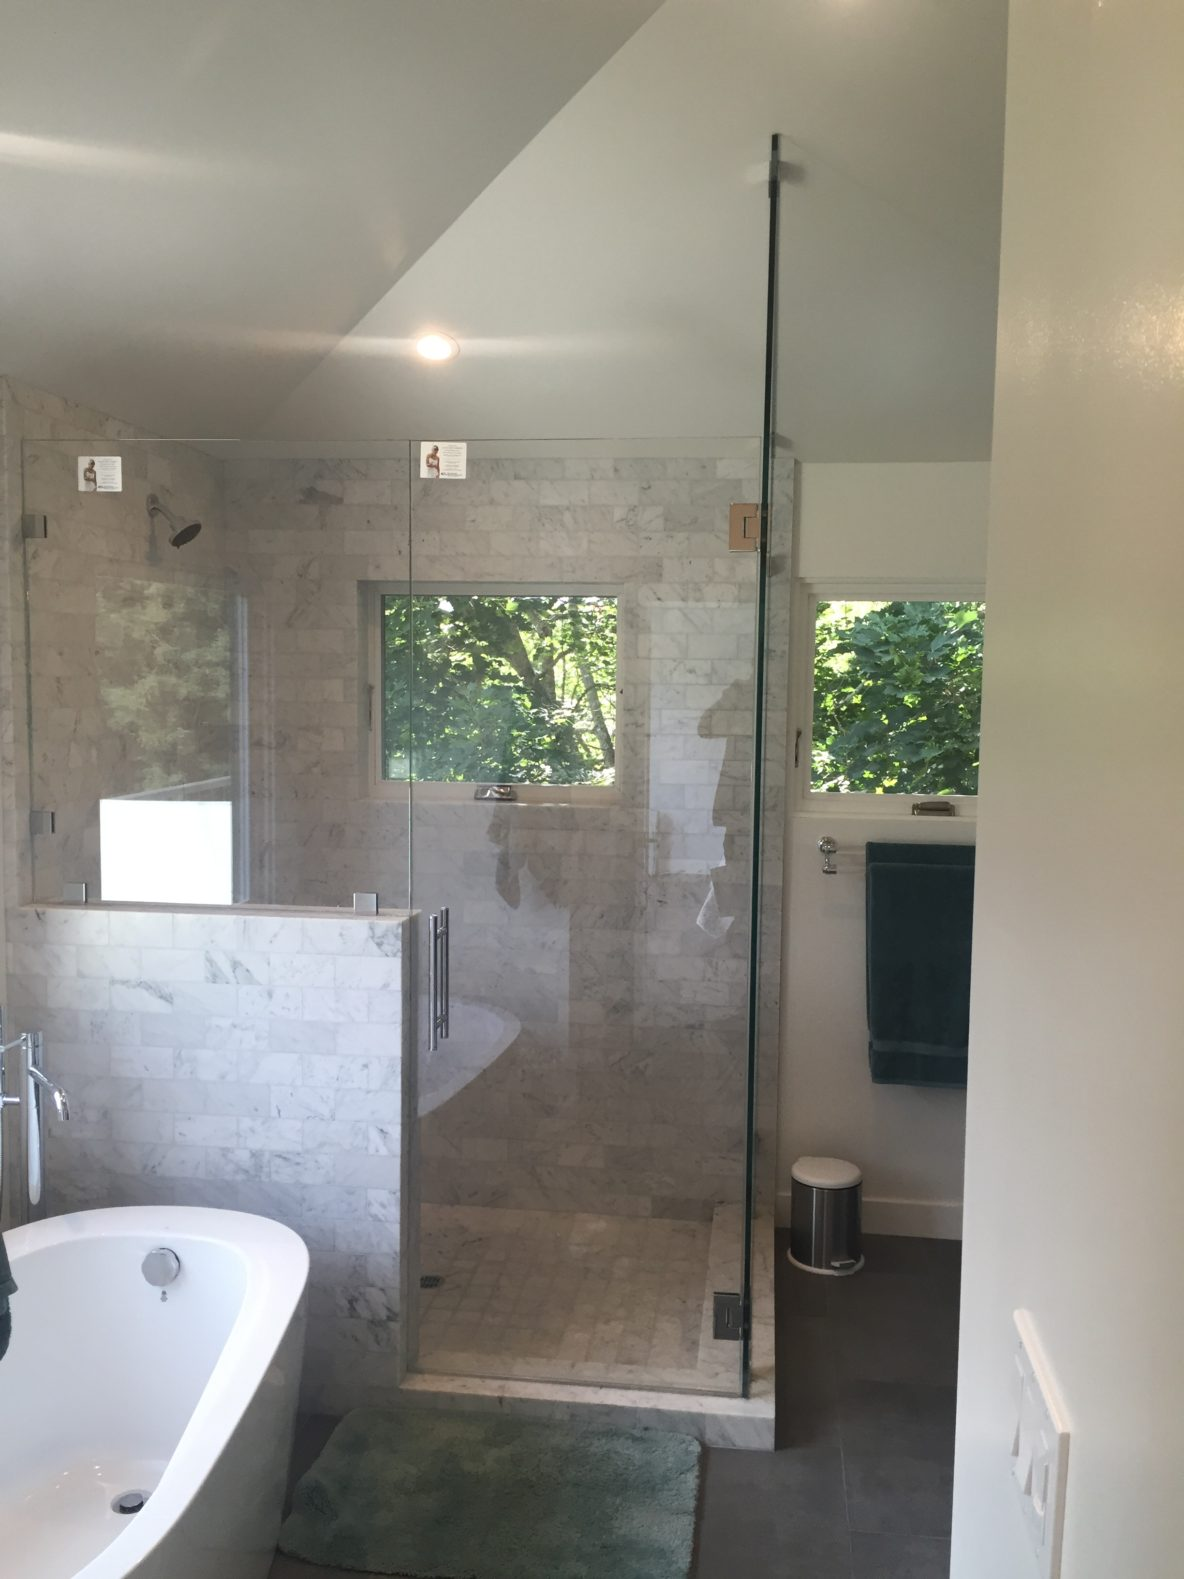 Unique application with Guardian Showerguard. A 90 degree corner unit that follows the rake of the ceiling, with a fixed panel on the pony wall.